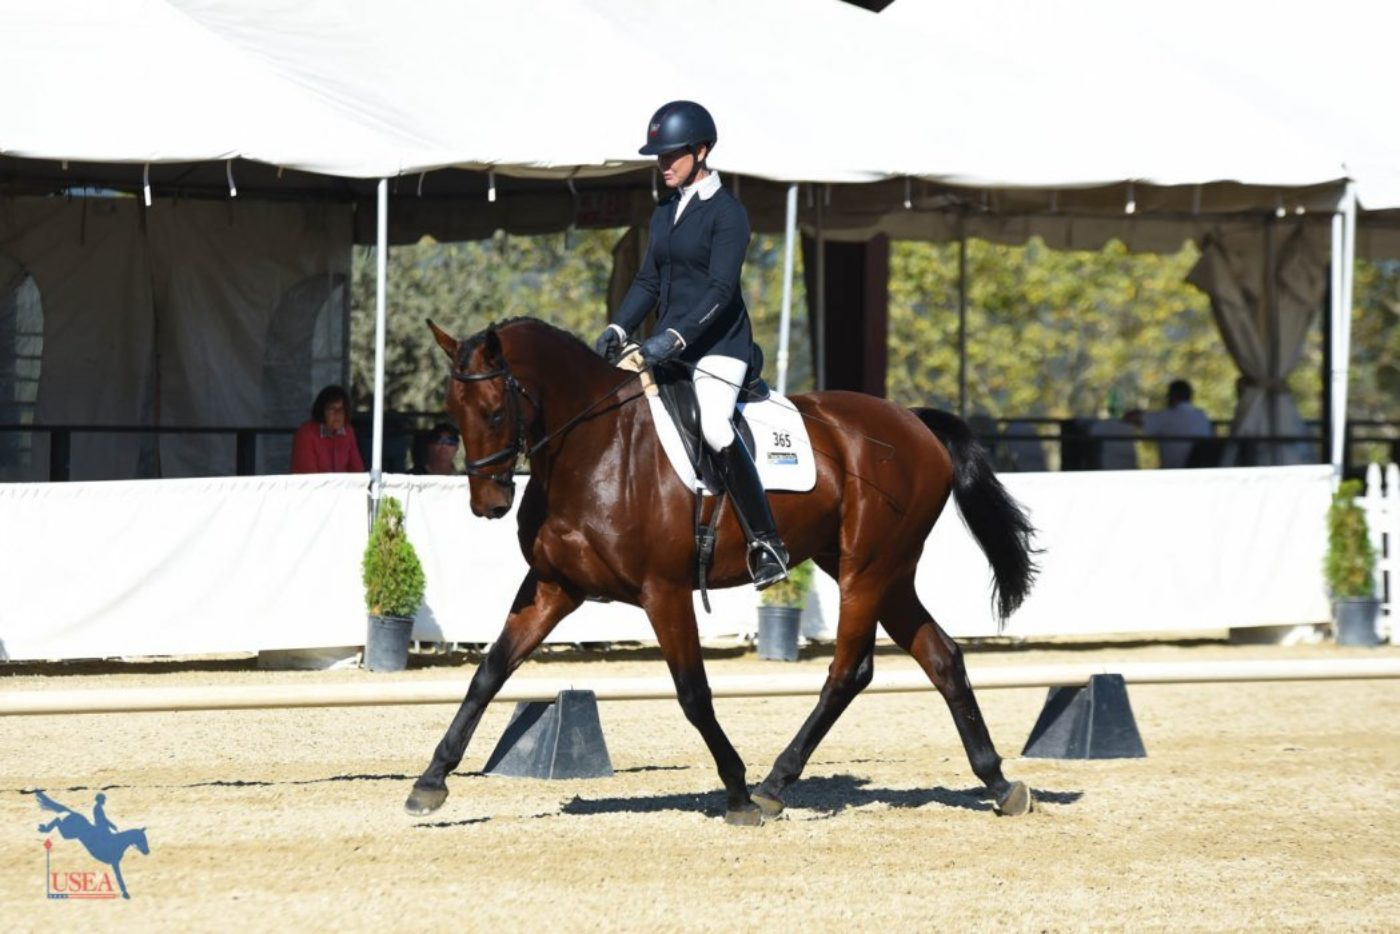 1st YEH-5 - Tamie Smith and Summerbridge Parc - 80.81